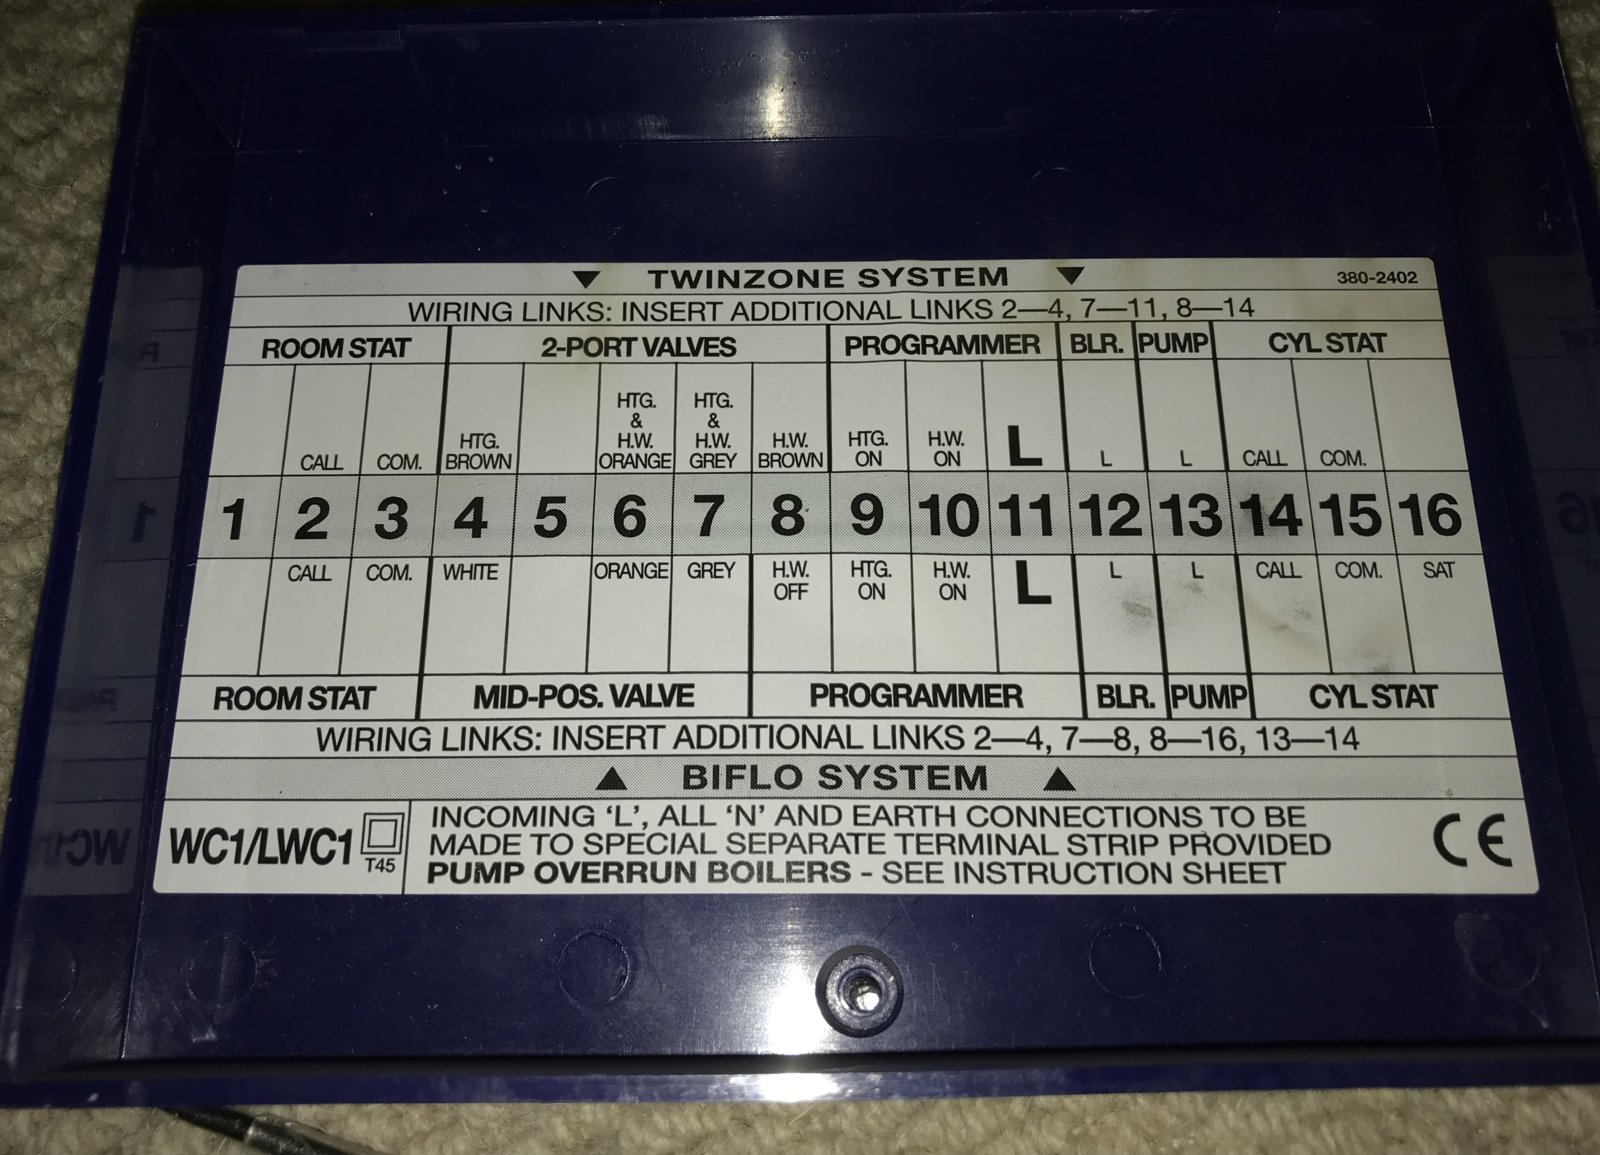 Hive thermostat instructions decommissioning wired thermostat for hive 2 install diynot forums cheapraybanclubmaster Image collections